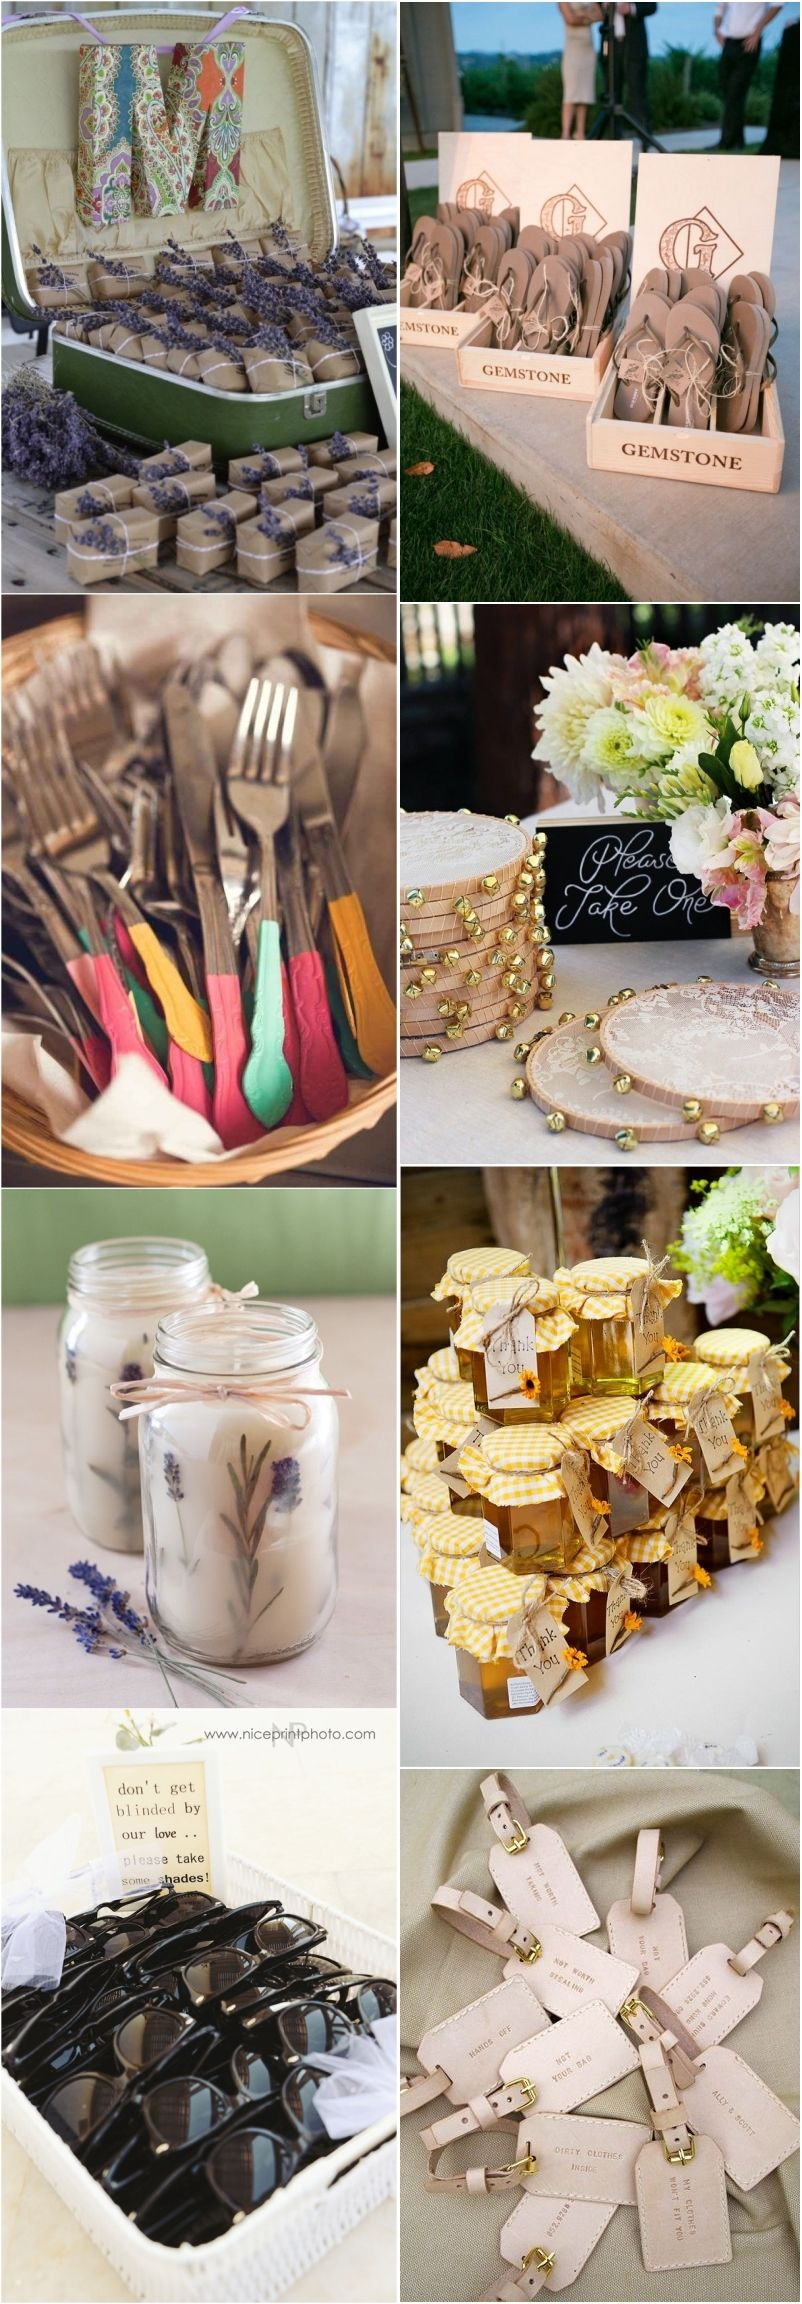 9 IDEAS FOR UNIQUE (AND EASY) WEDDING CENTERPIECES picture